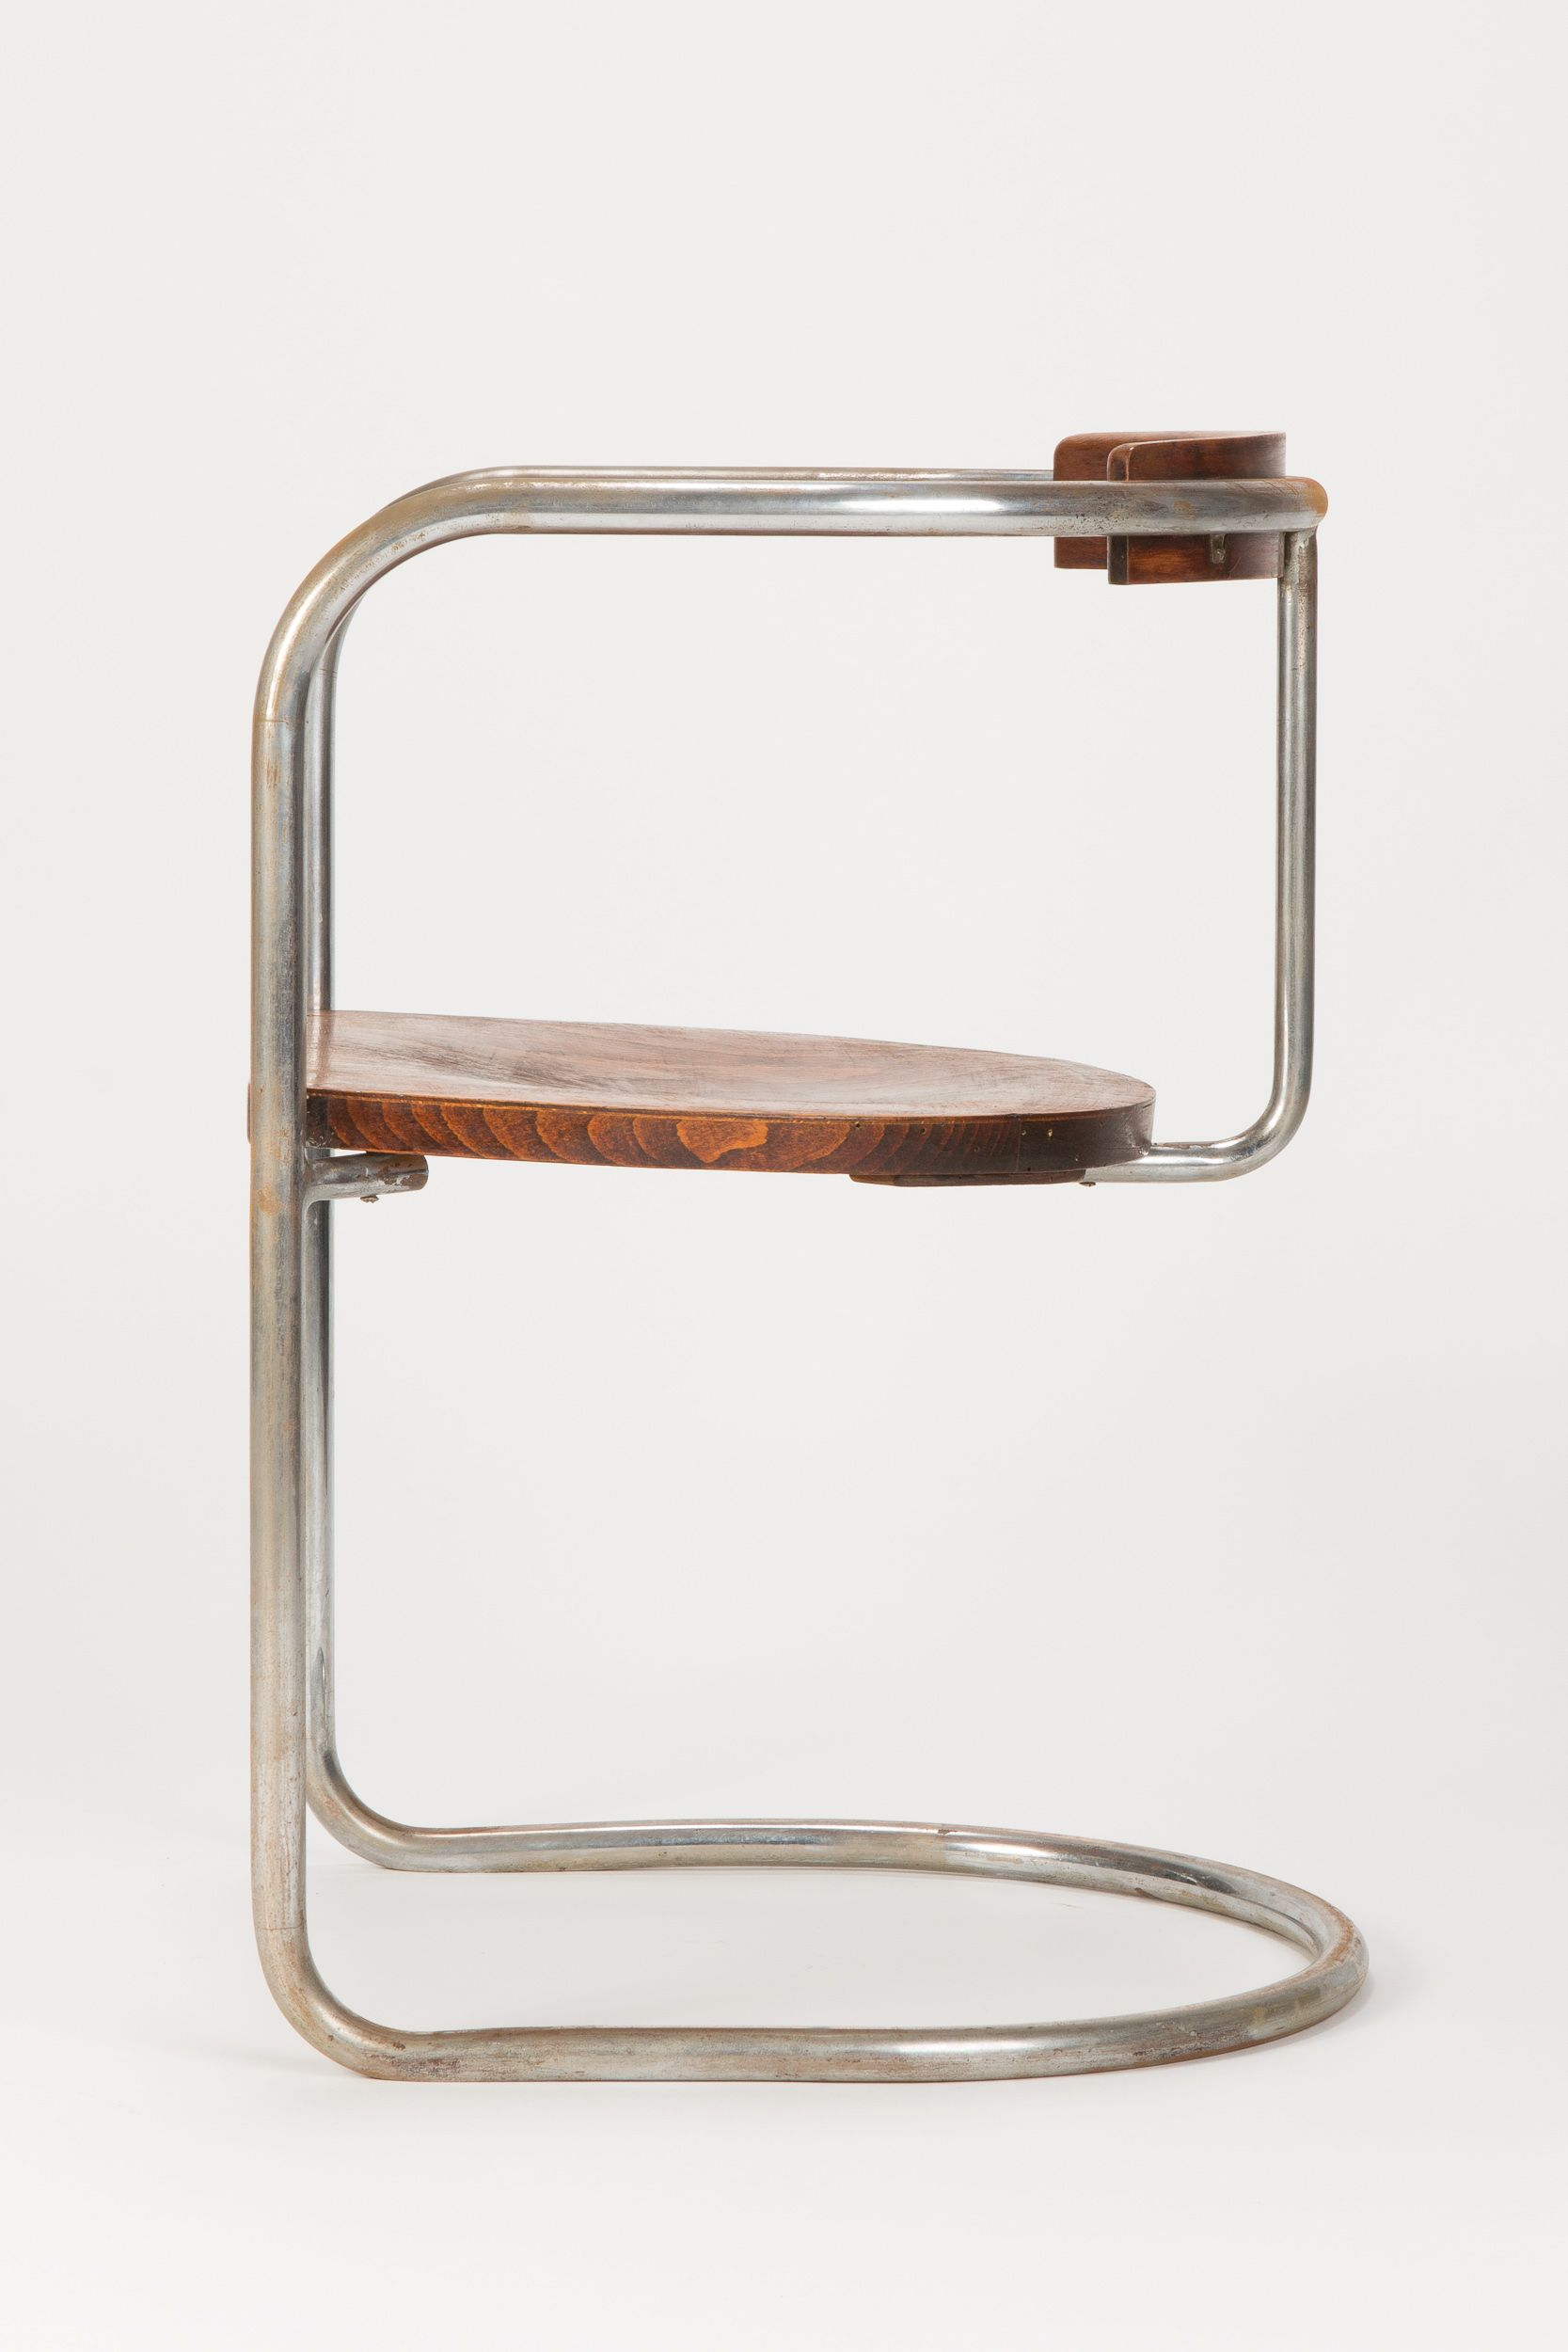 Rollershop Tv Sessel Tom Bauhaus Steel Tube Cantilever Chair 30s Bauhaus Pinterest